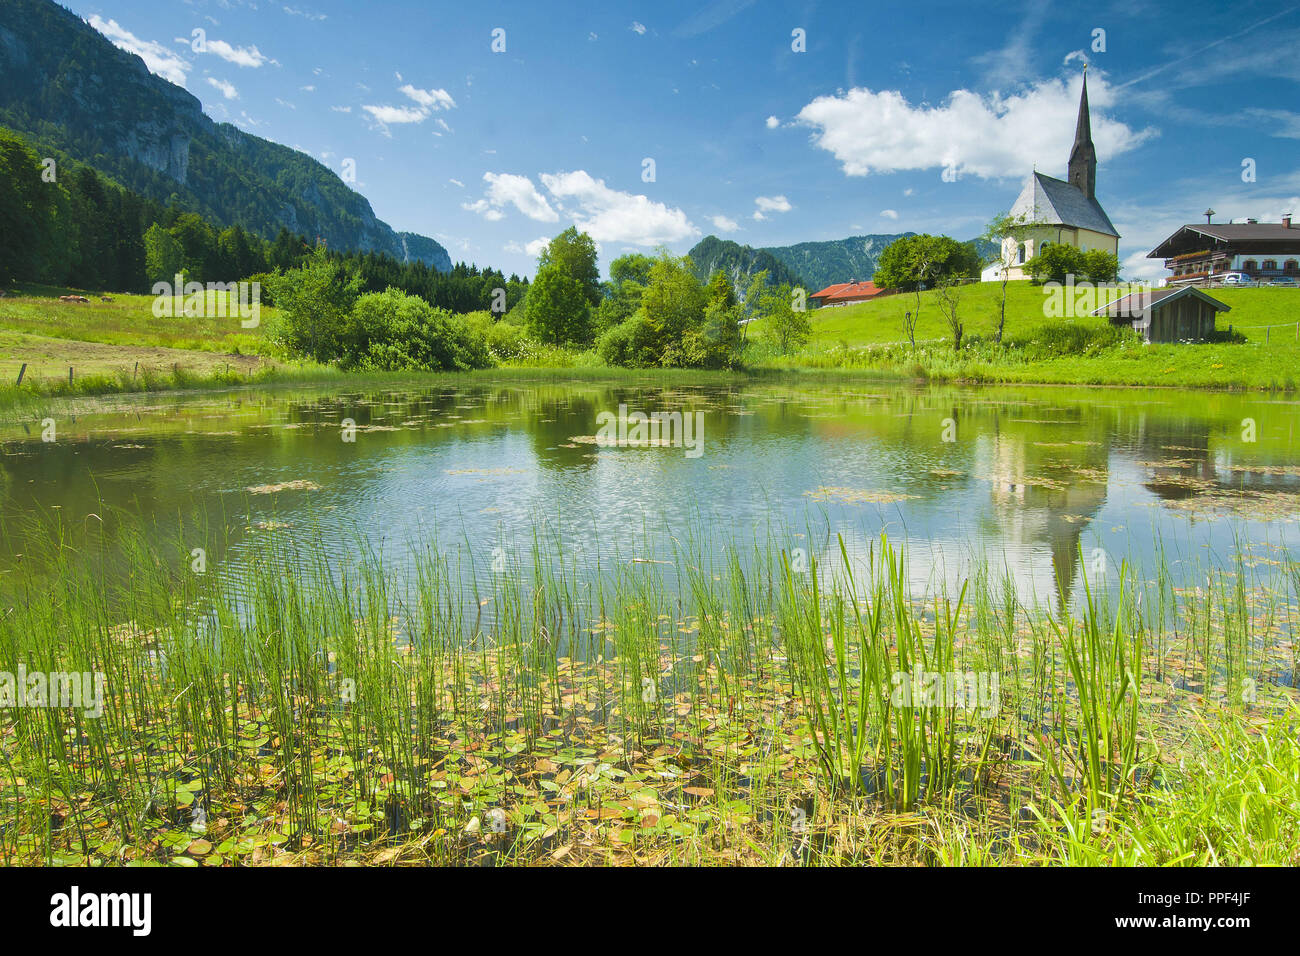 The picturesquely situated Einsiedl, municipality of Inzell, Chiemgau, Upper Bavaria. - Stock Image